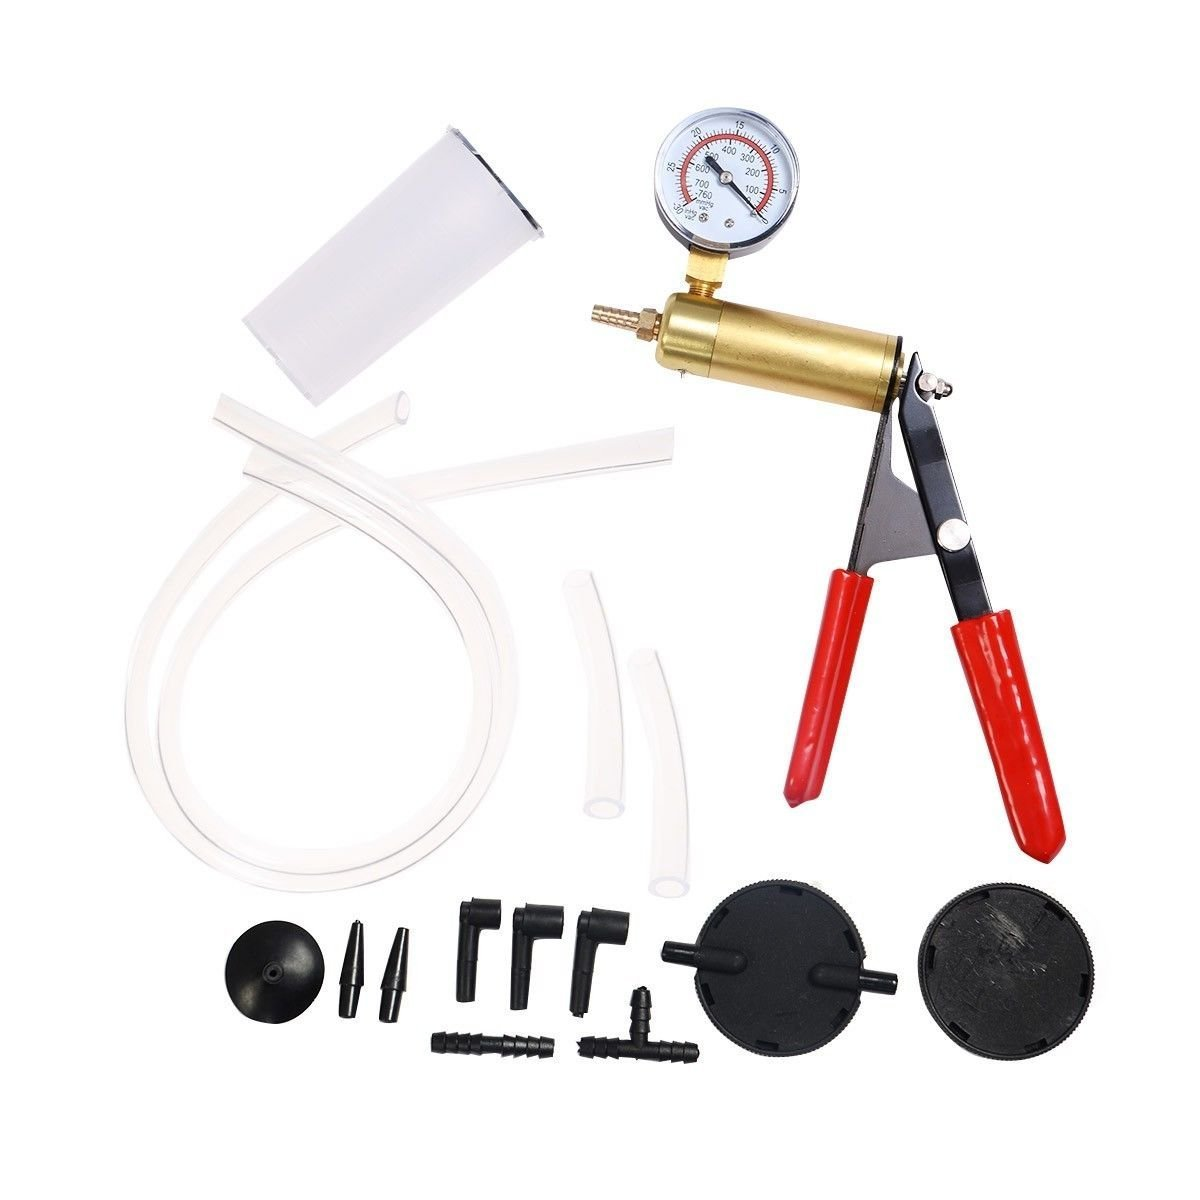 CHOOSEandBUY 2 in1 Brake Bleeder Bleeding & Vacuum Pump Tester Kit Professional Automotive